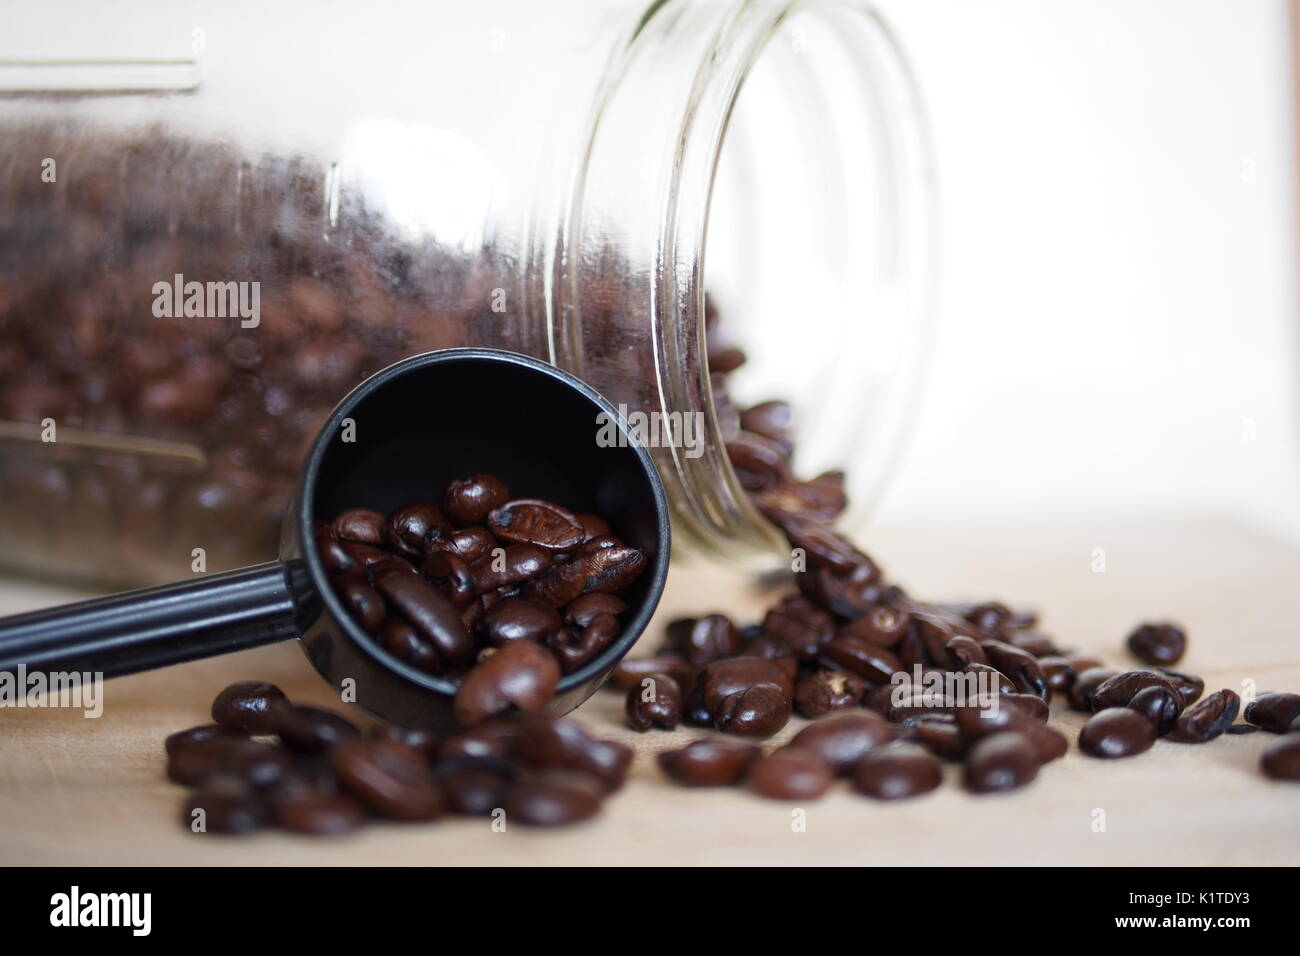 Coffee beans spill from a glass jar and a measuring spoon onto a wooden cutting board. - Stock Image